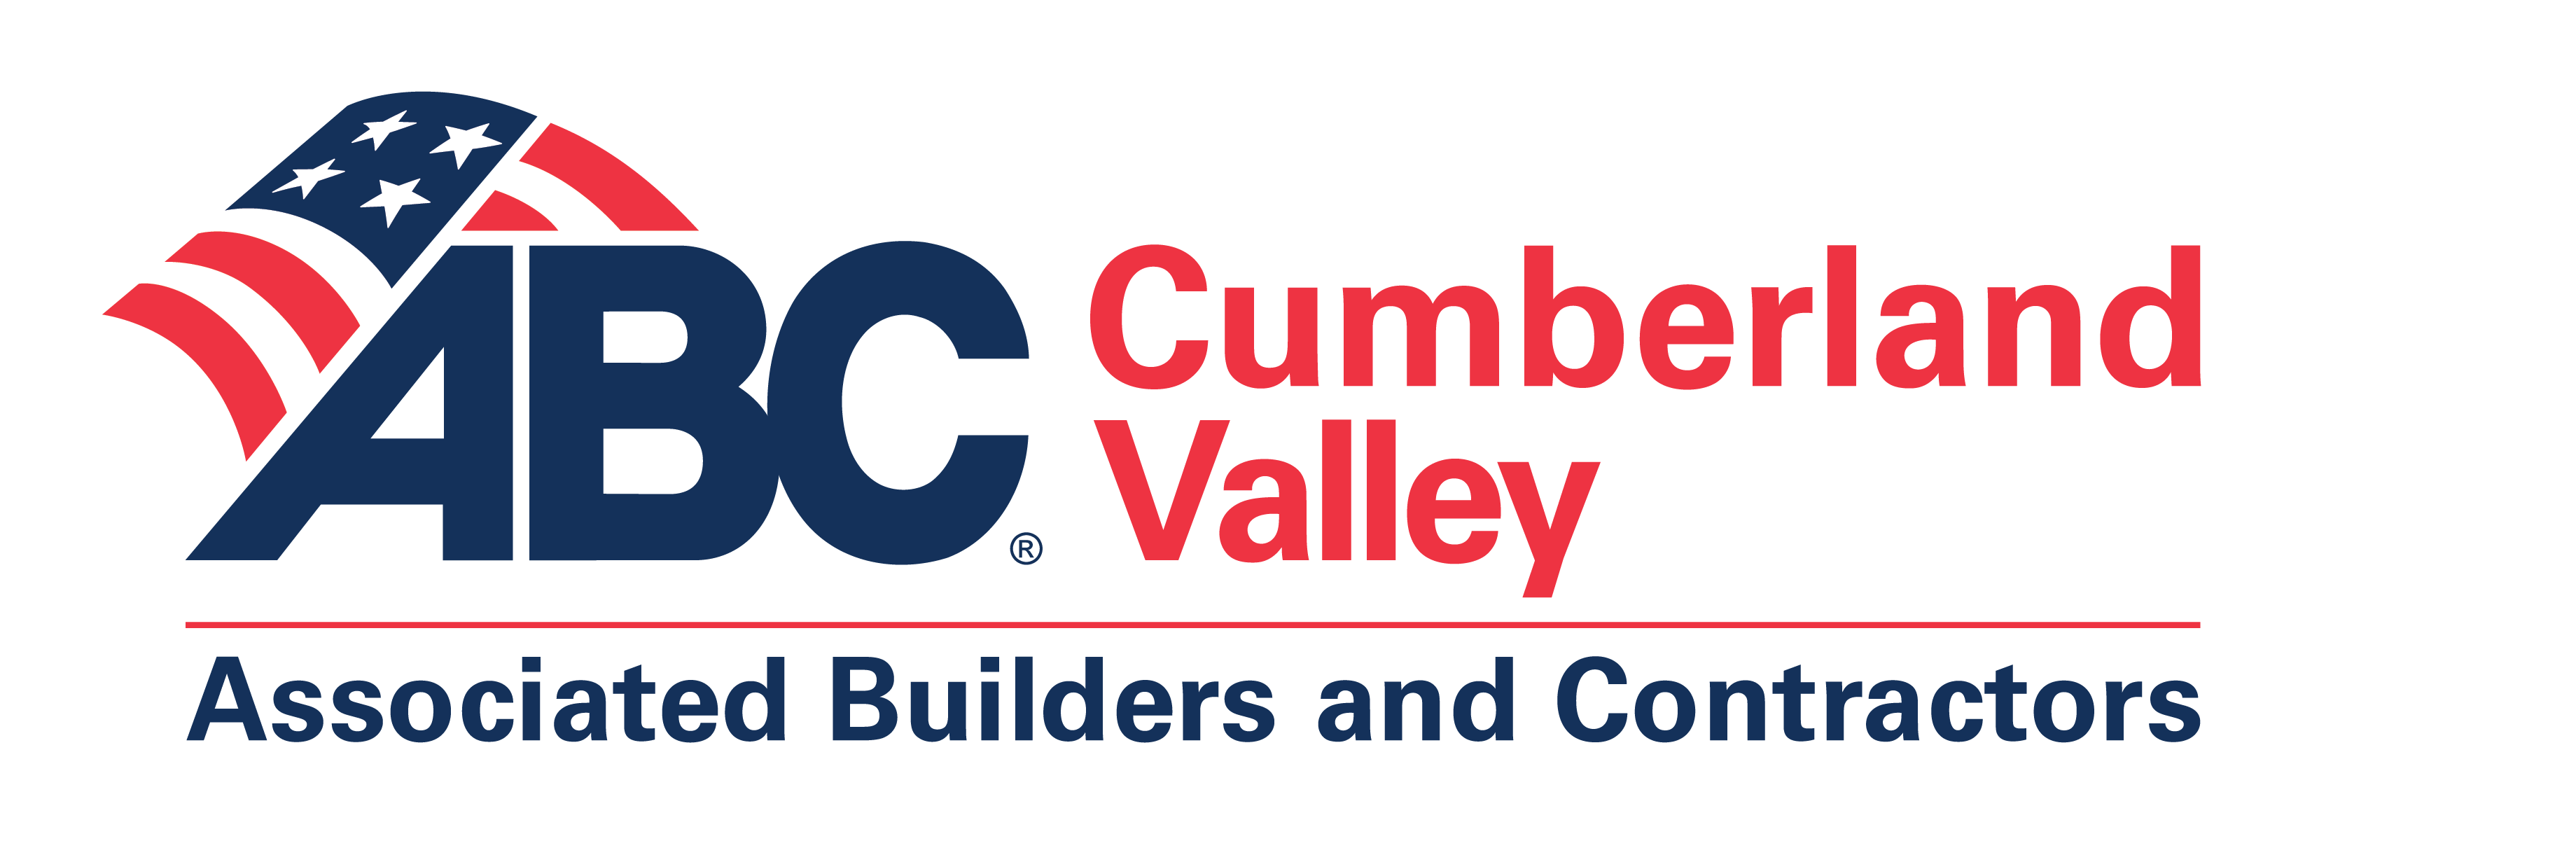 Associated Builders and Contractors, Inc. – Cumberland Valley Chapter